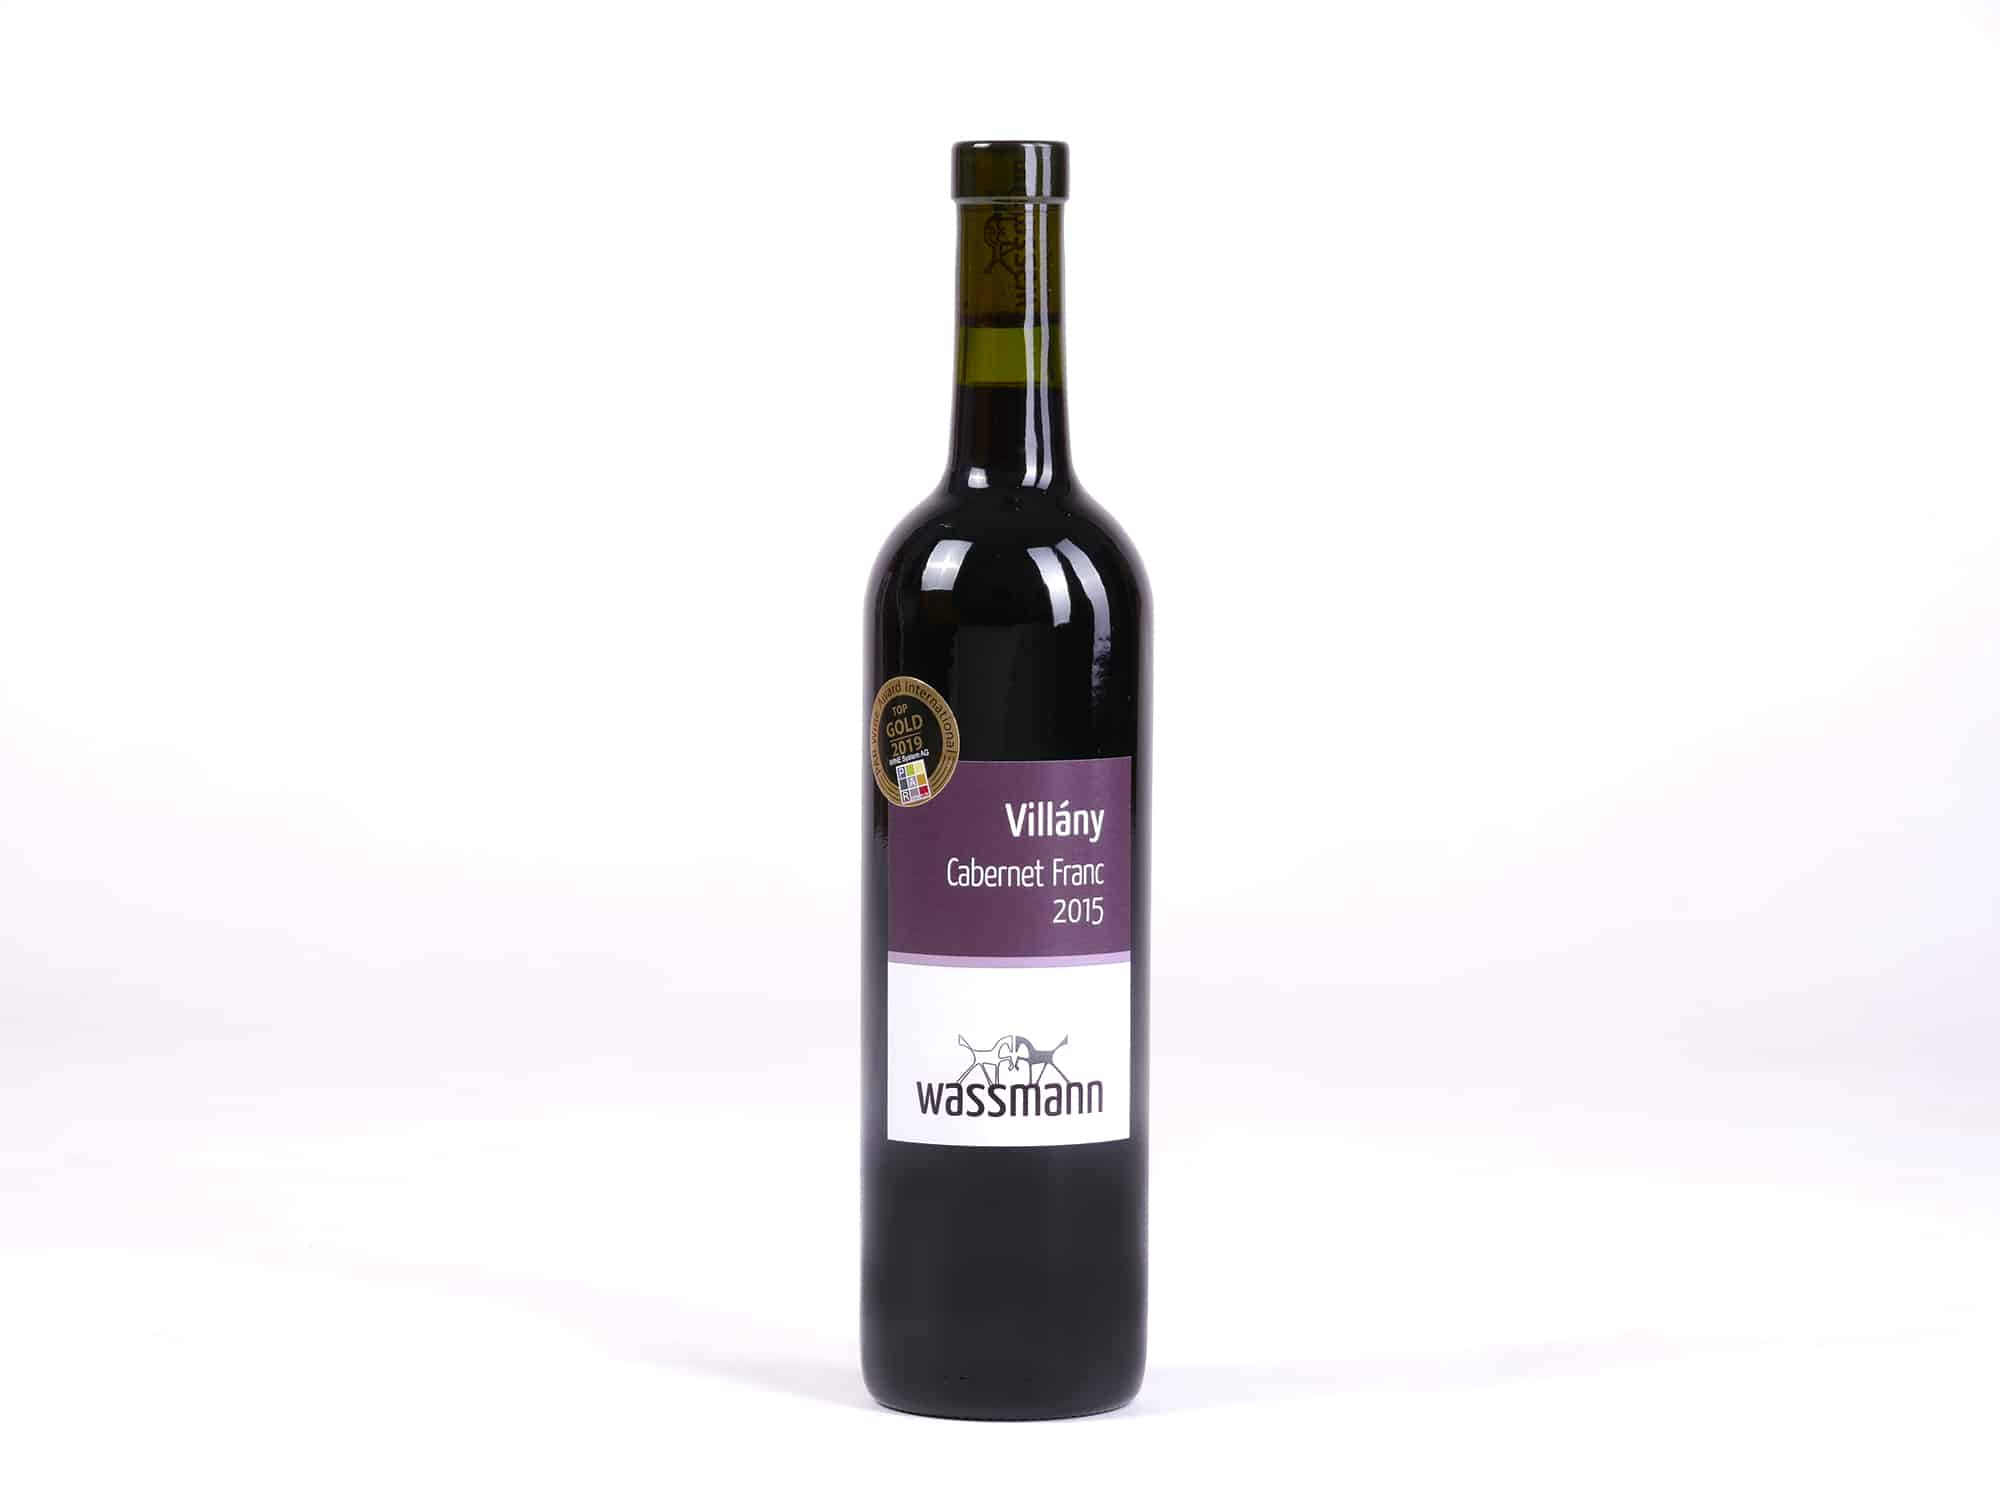 Awaited launch at Systembolaget: Wassmann Cabernet Franc!